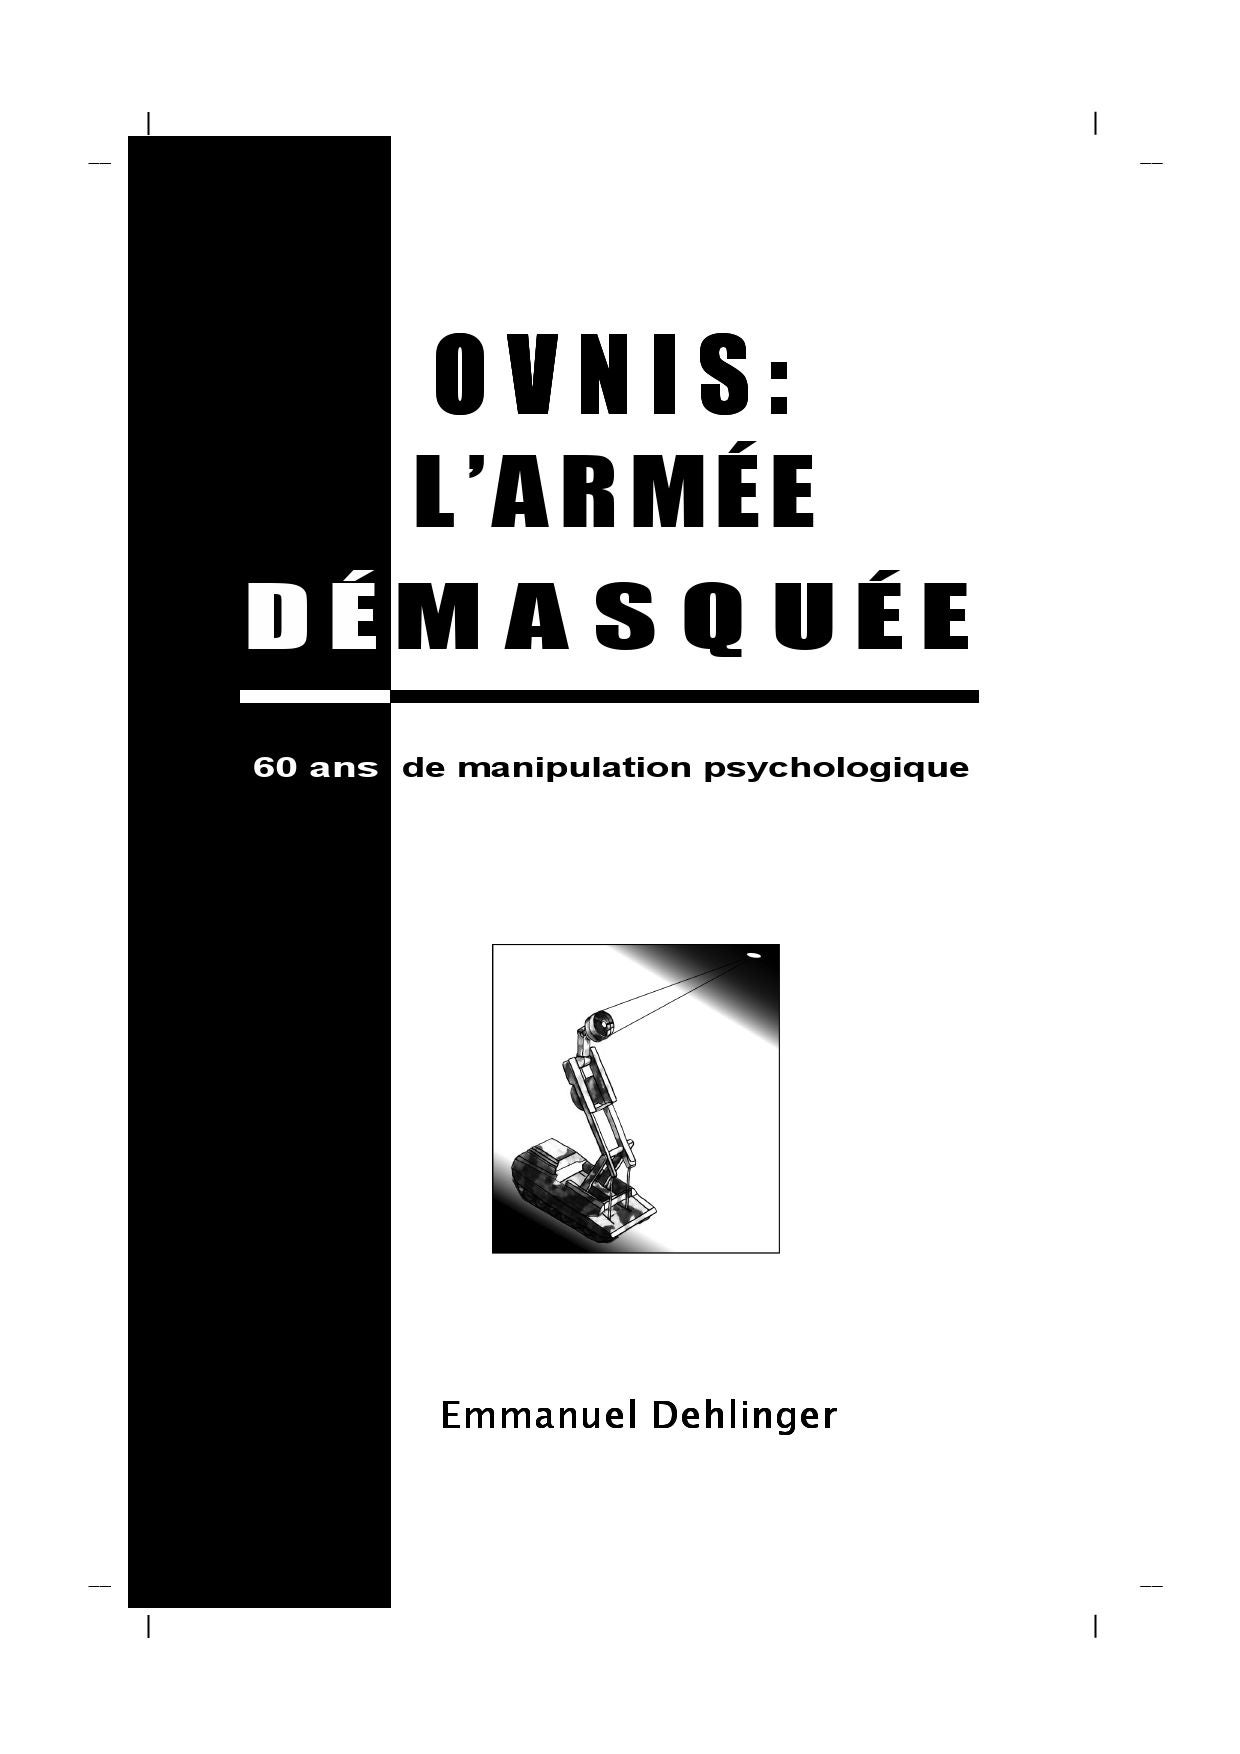 Ovnislarmee Demasquee By Frankh Issuu